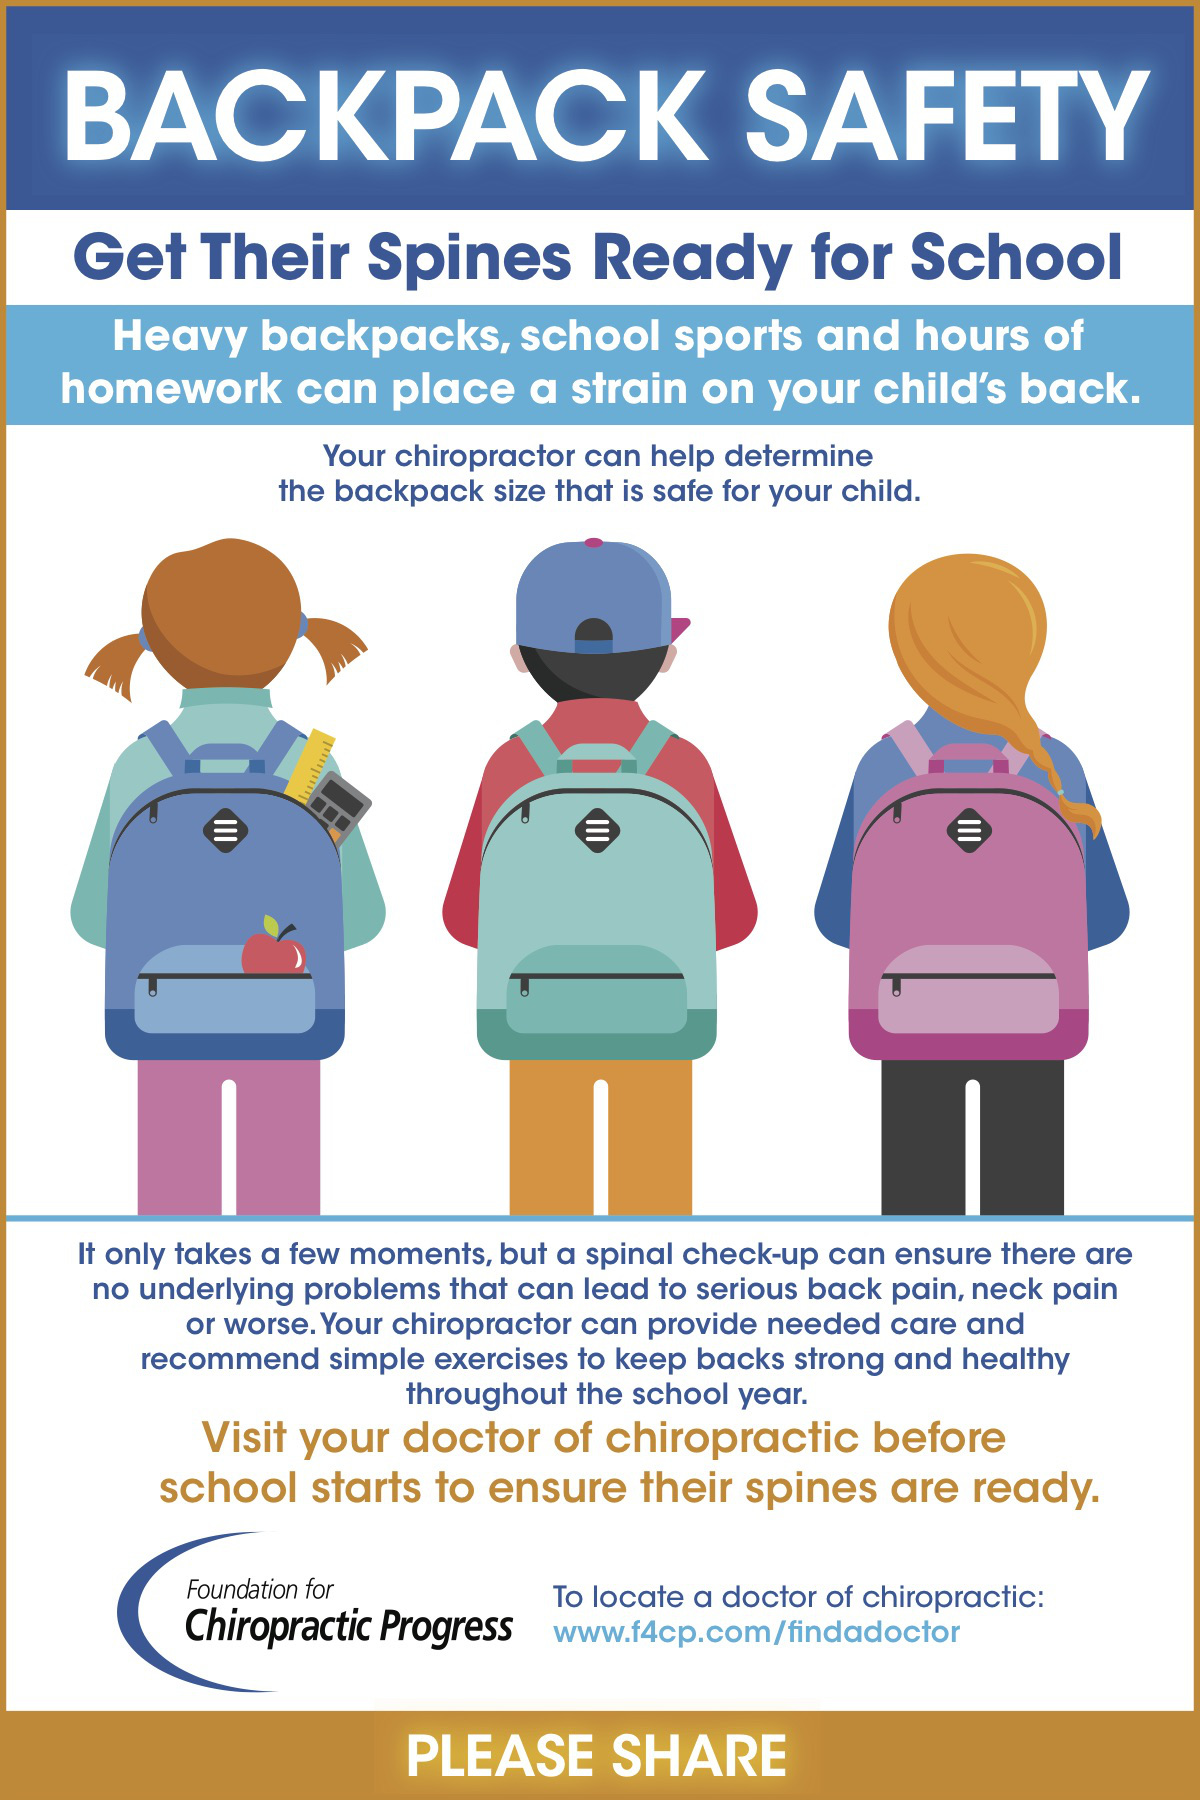 Backpack safety and Chiropractic